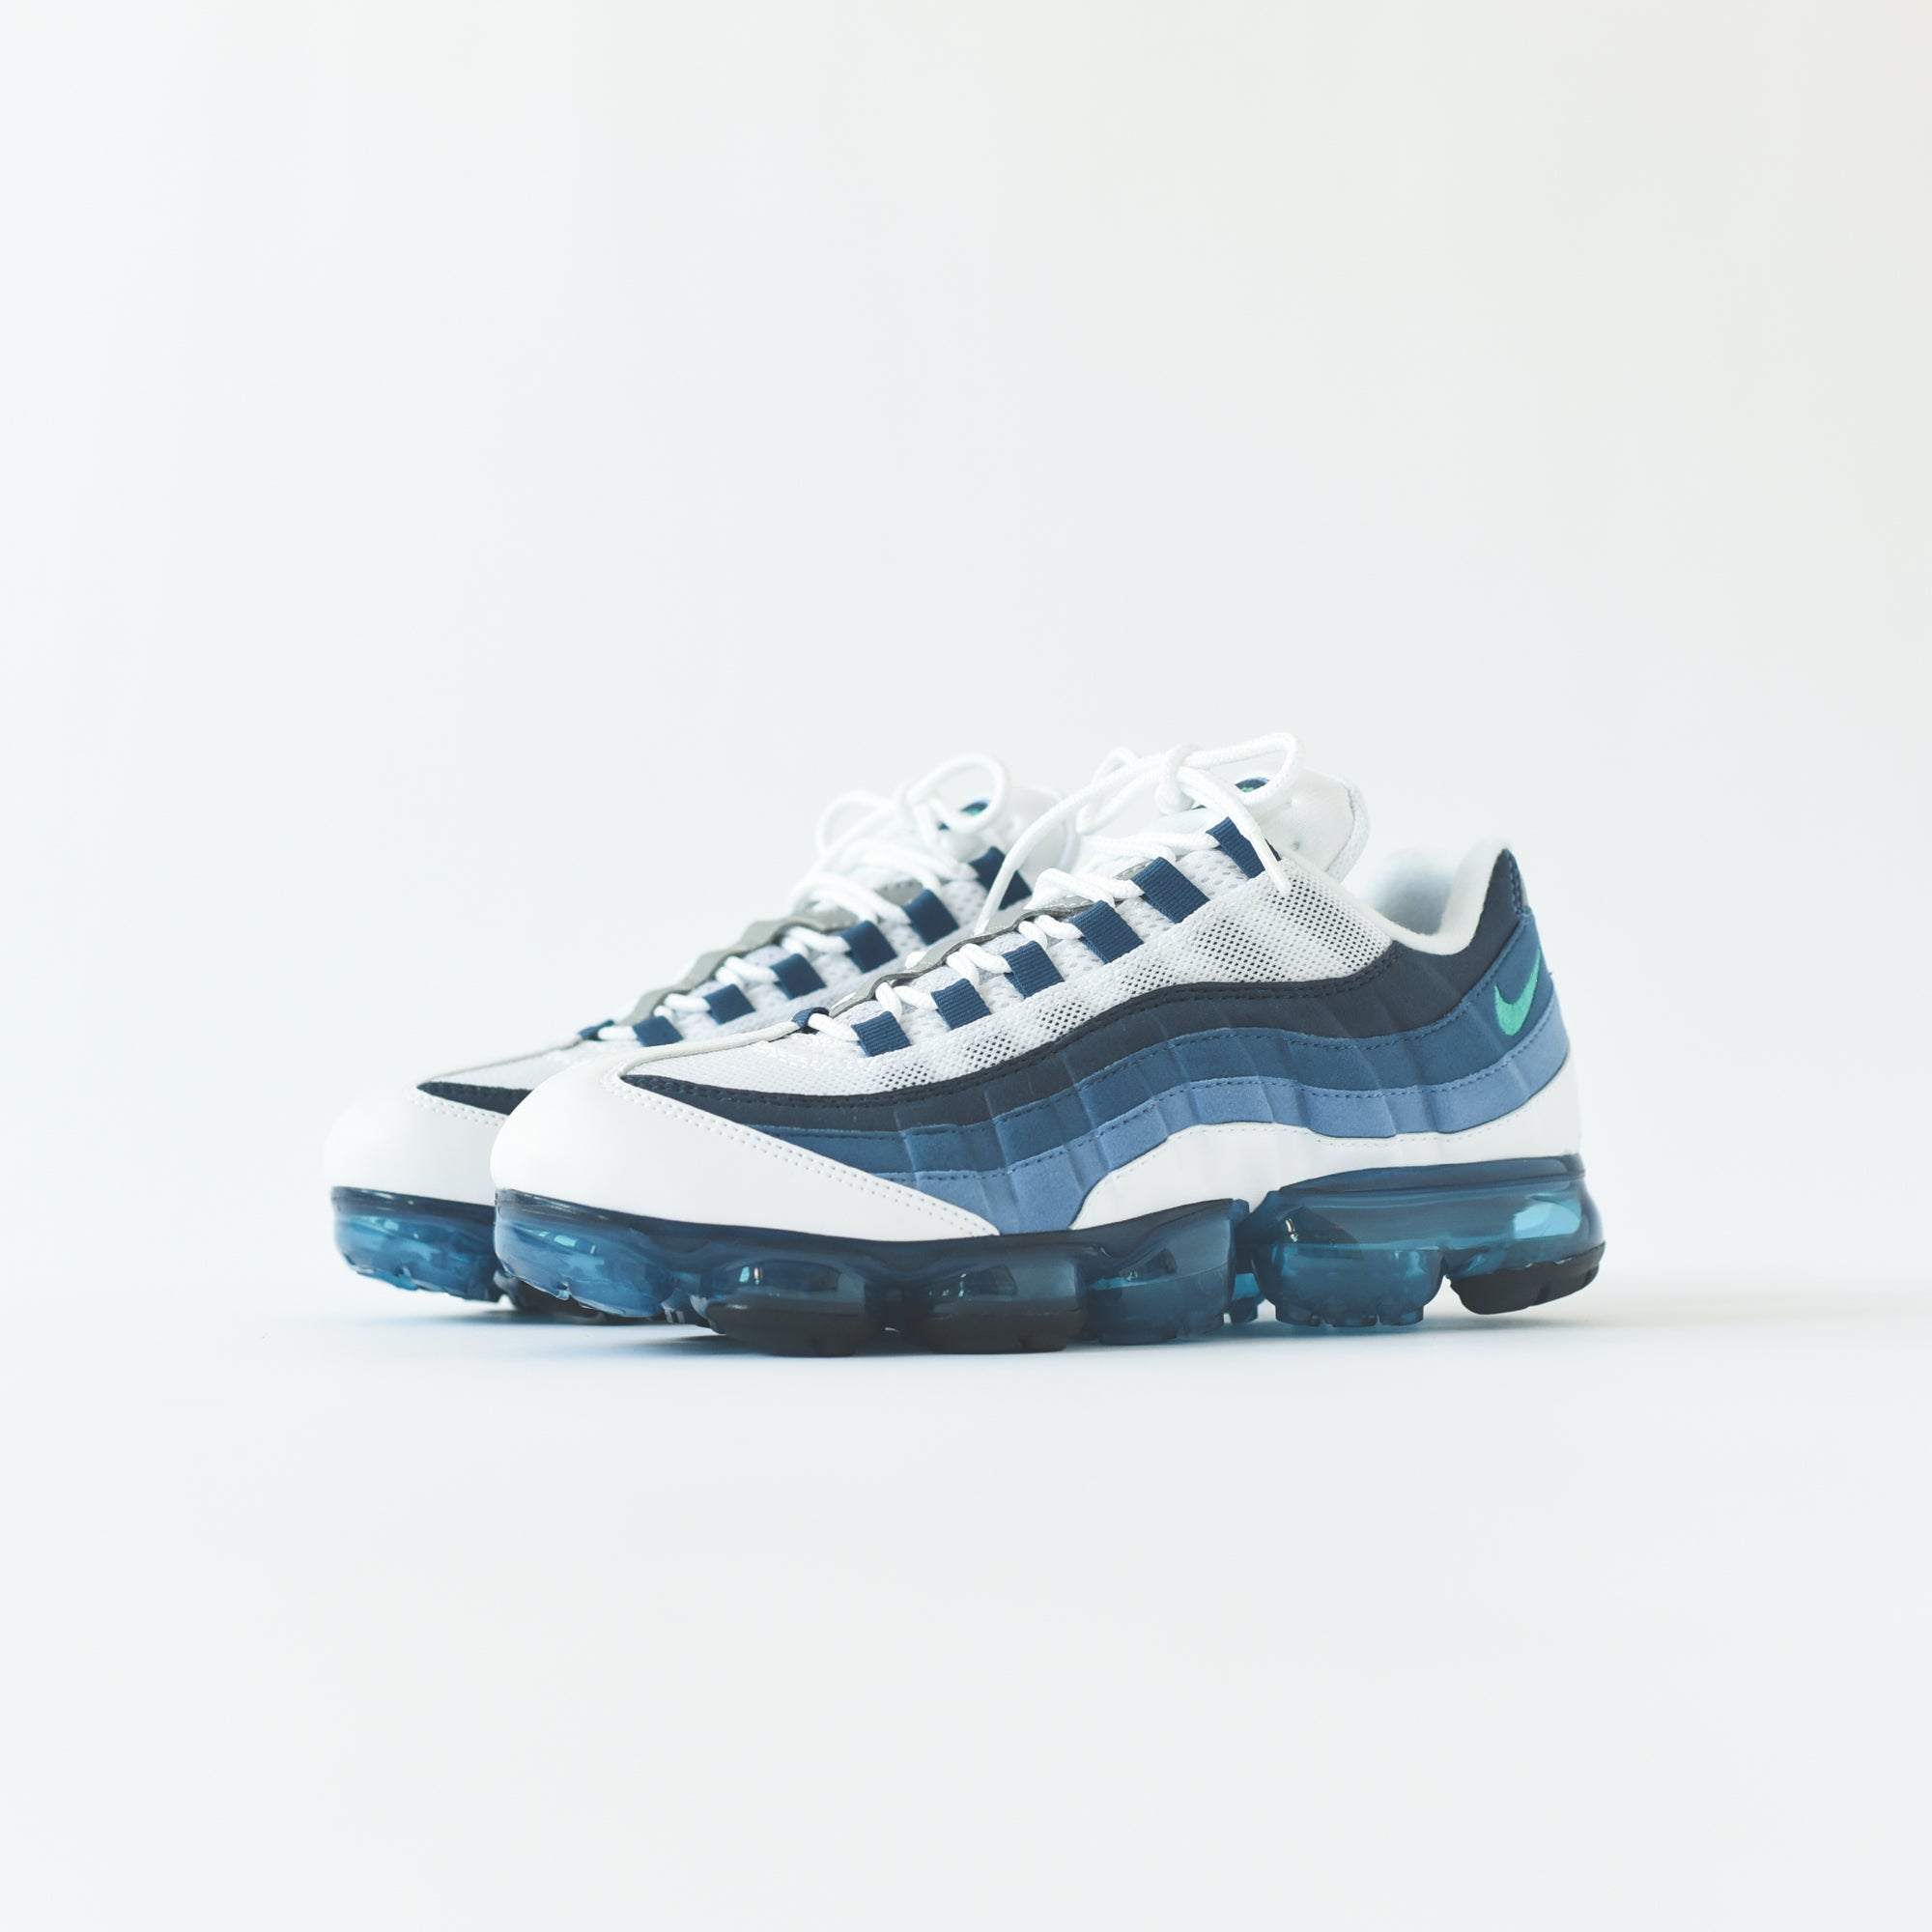 56ba477e20 Nike Air VaporMax '95 - White / New Green / French Blue Lake. September 06,  2018. -3. -1. -2